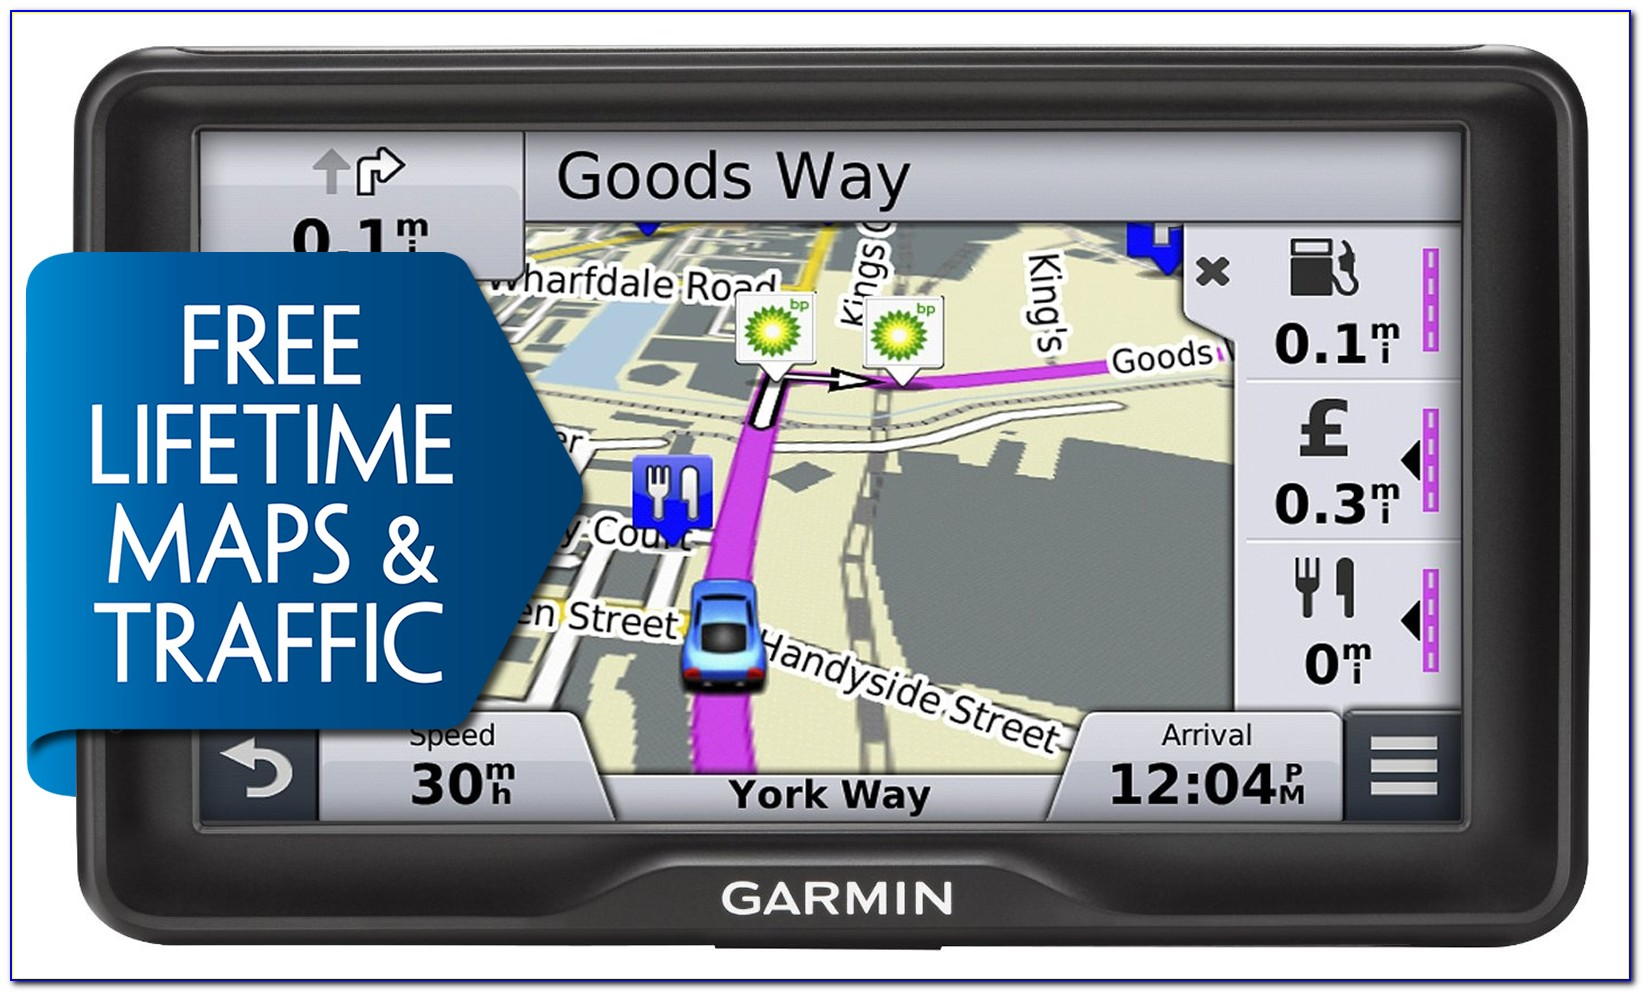 How To Update Maps On Garmin Nuvi 205w For Free